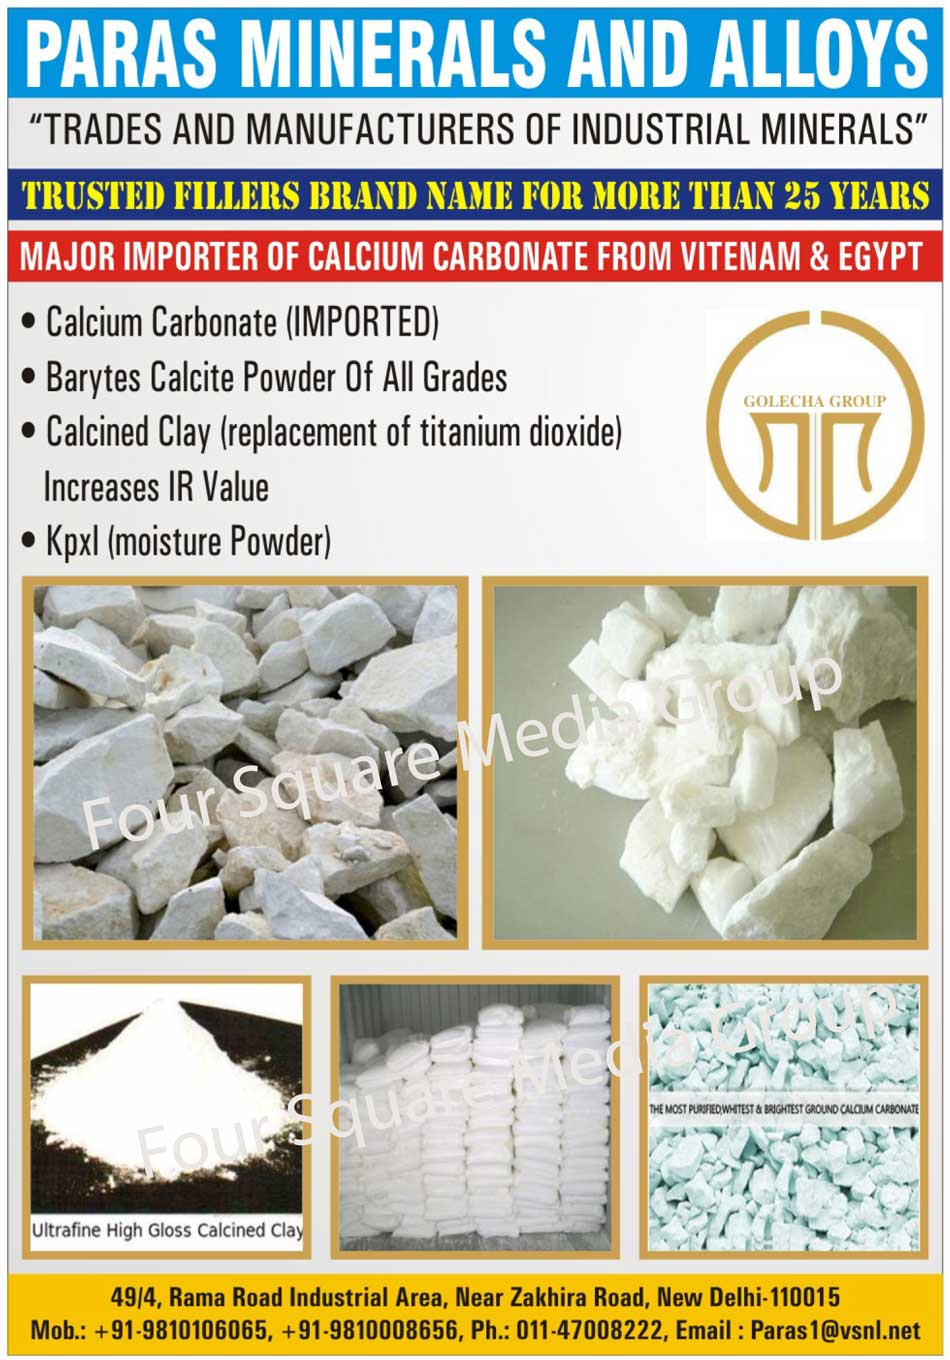 Industrial Minerals, Calcium Carbonate, Baryte Calcite Powder, Calcined Clay, Kpxl Powder, Moisture Powder